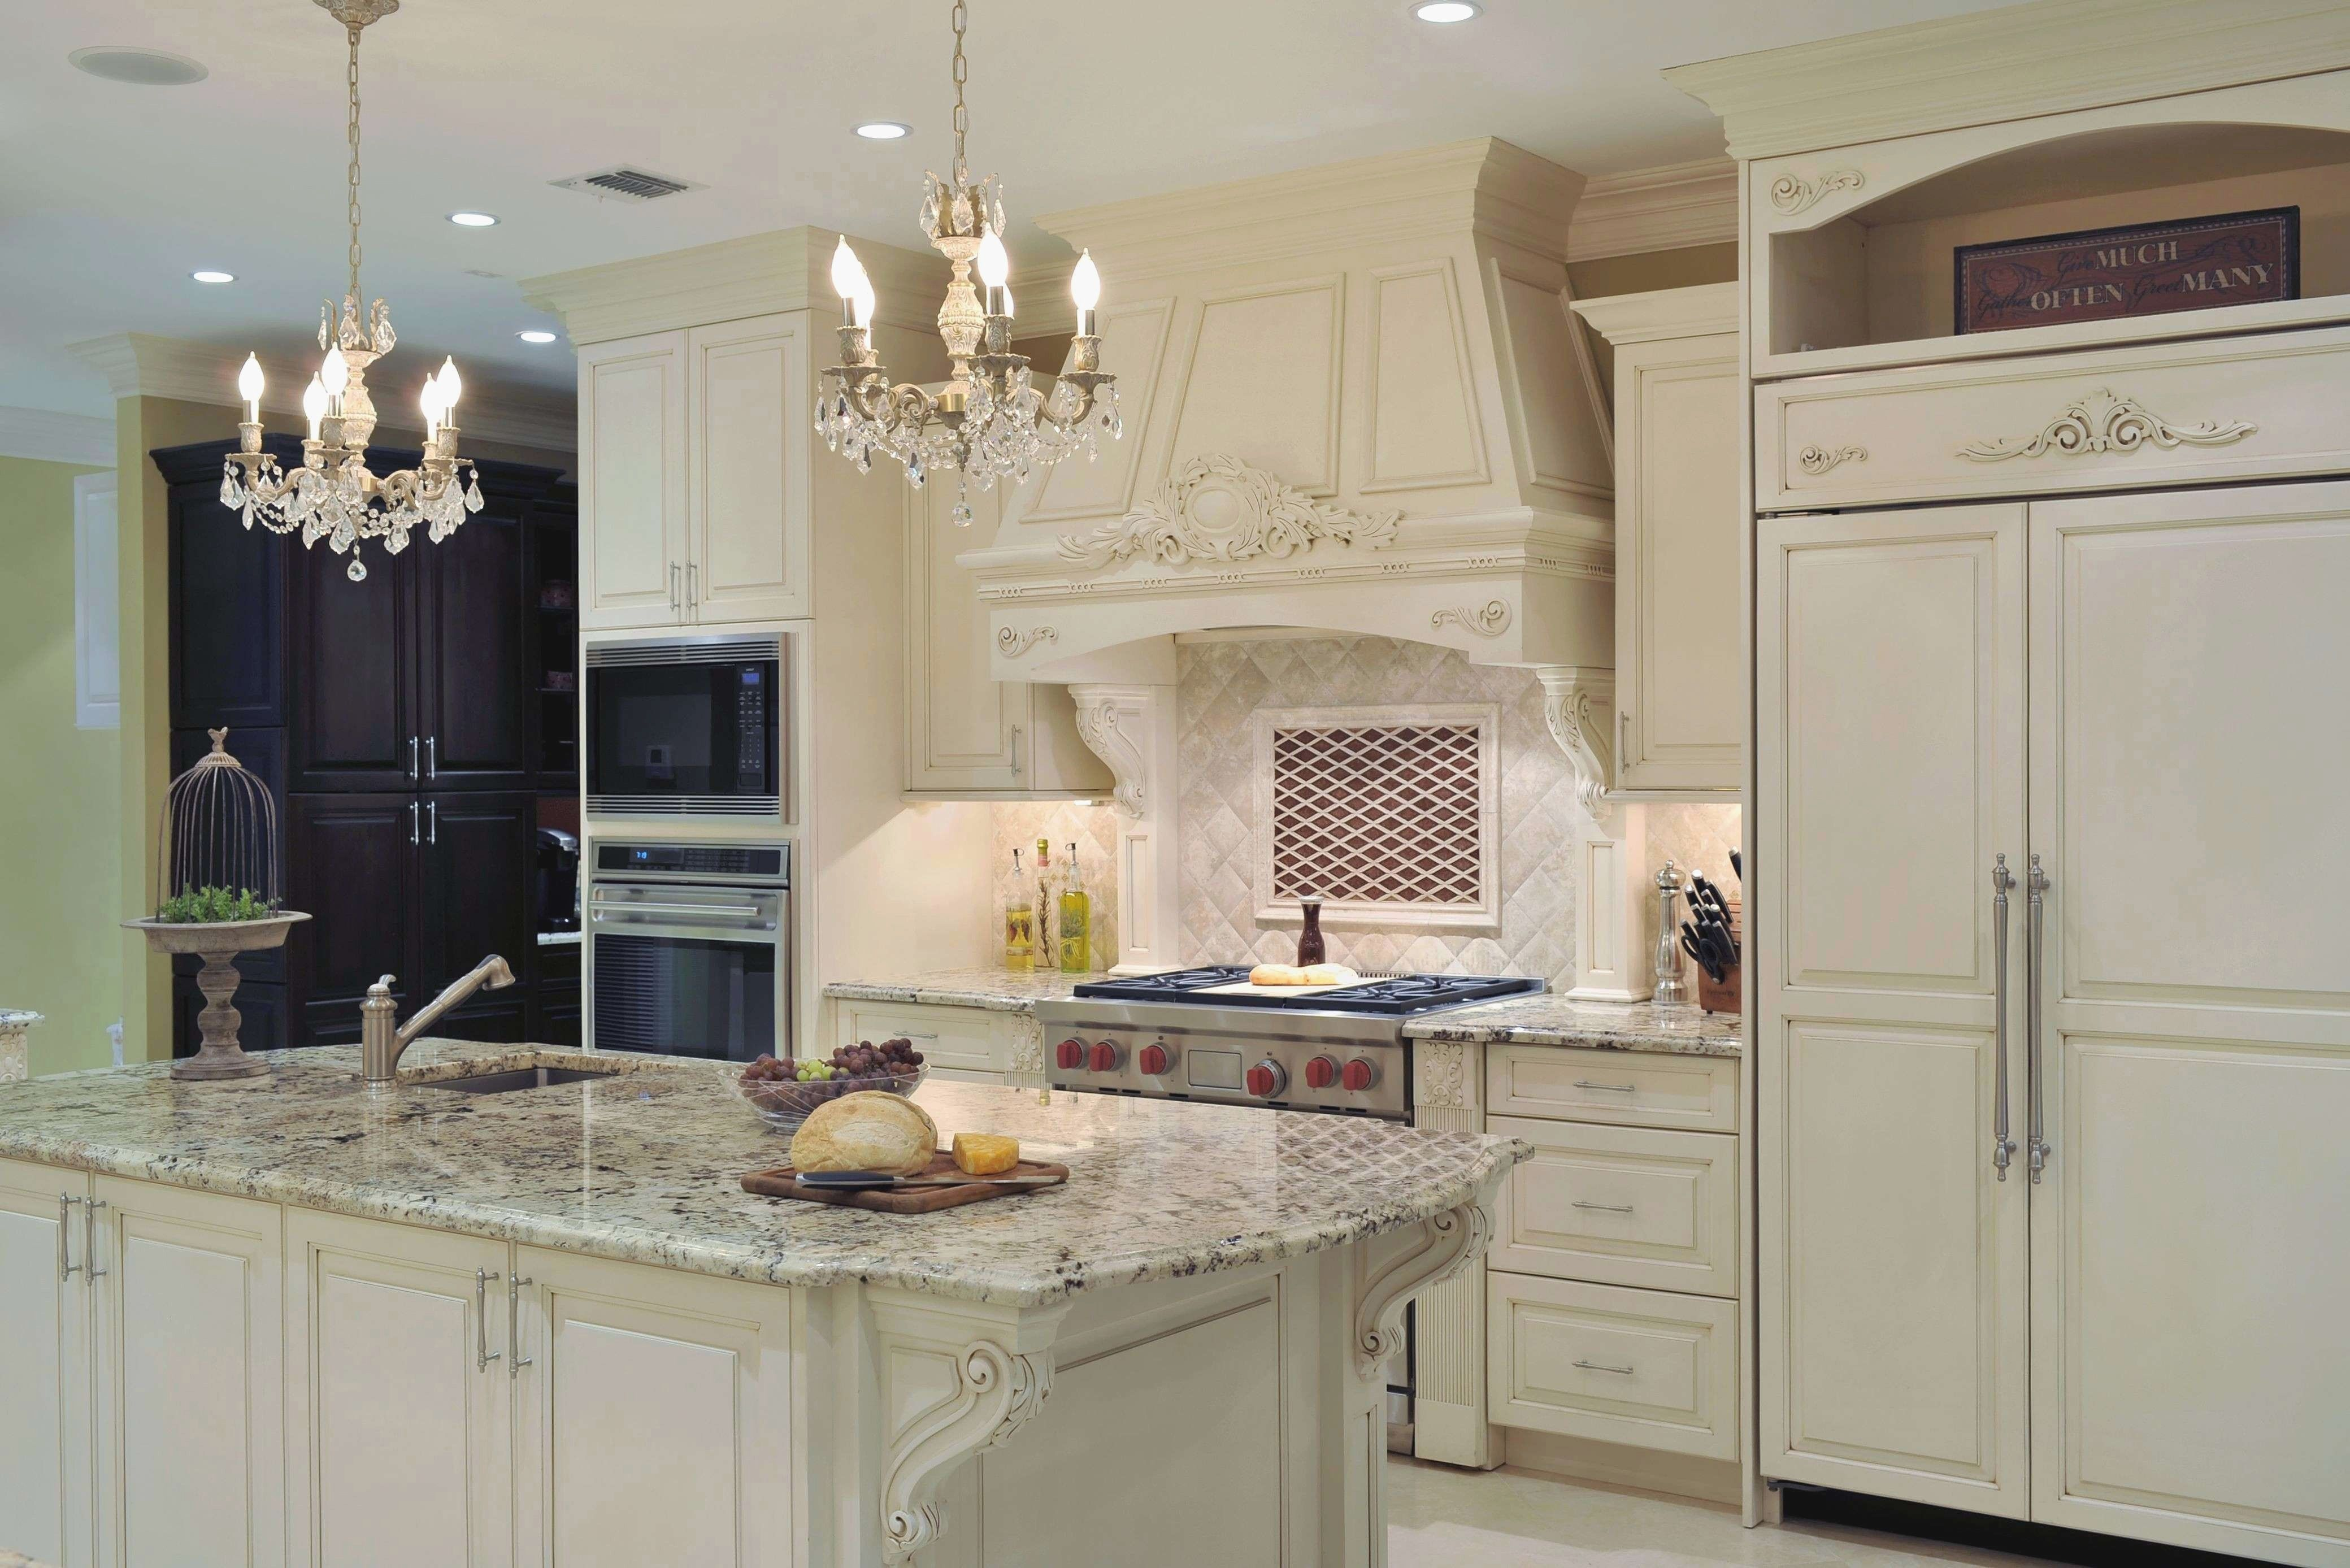 Best Of How Much To Paint Kitchen Cabinets Interior Home Depot Desain